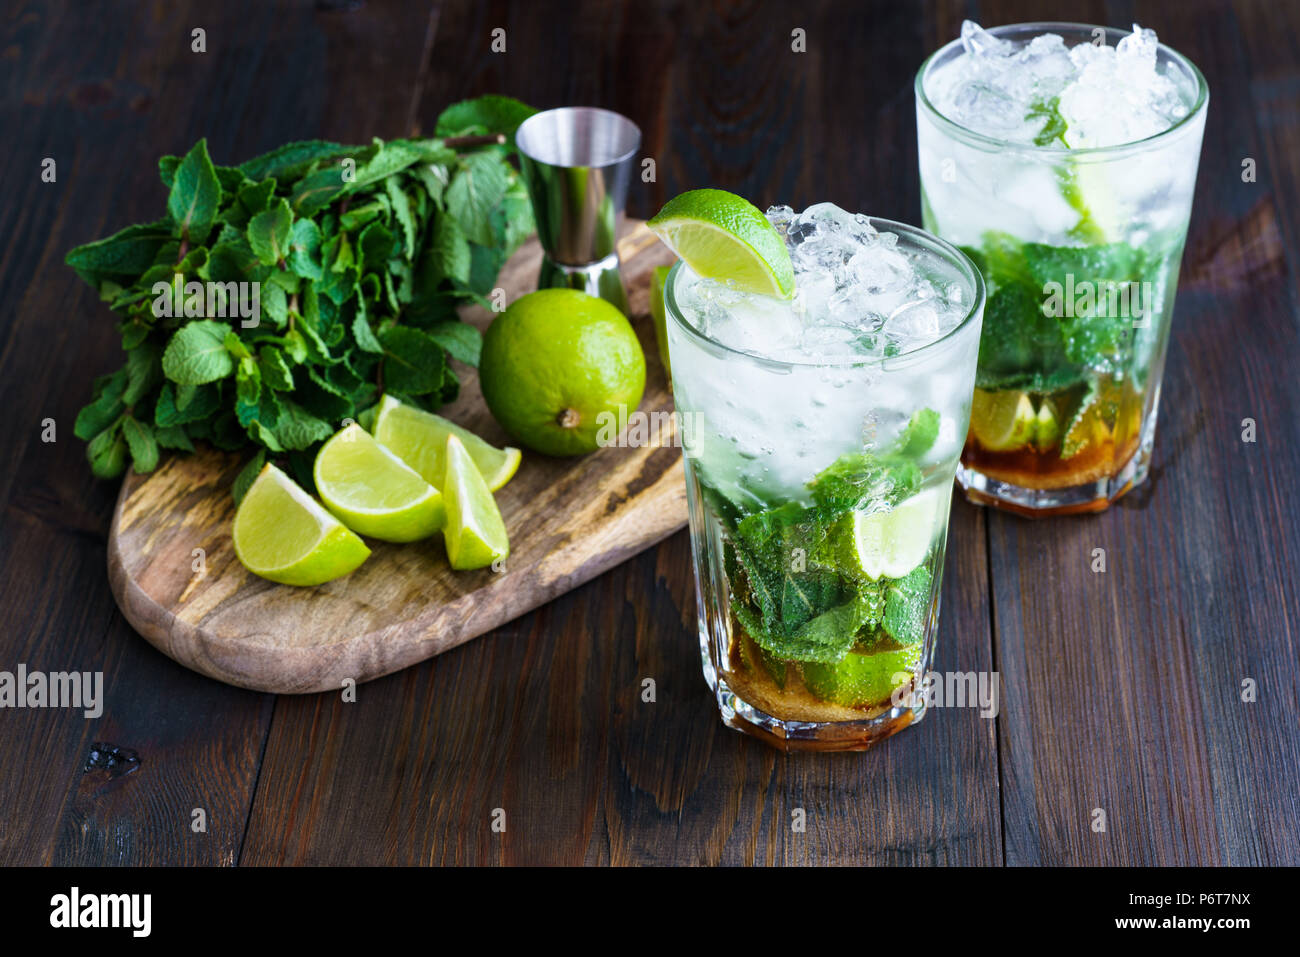 Dirty mojito and ingredients (fresh mint, sliced lime) served on a dark wooden board. High resolution. - Stock Image